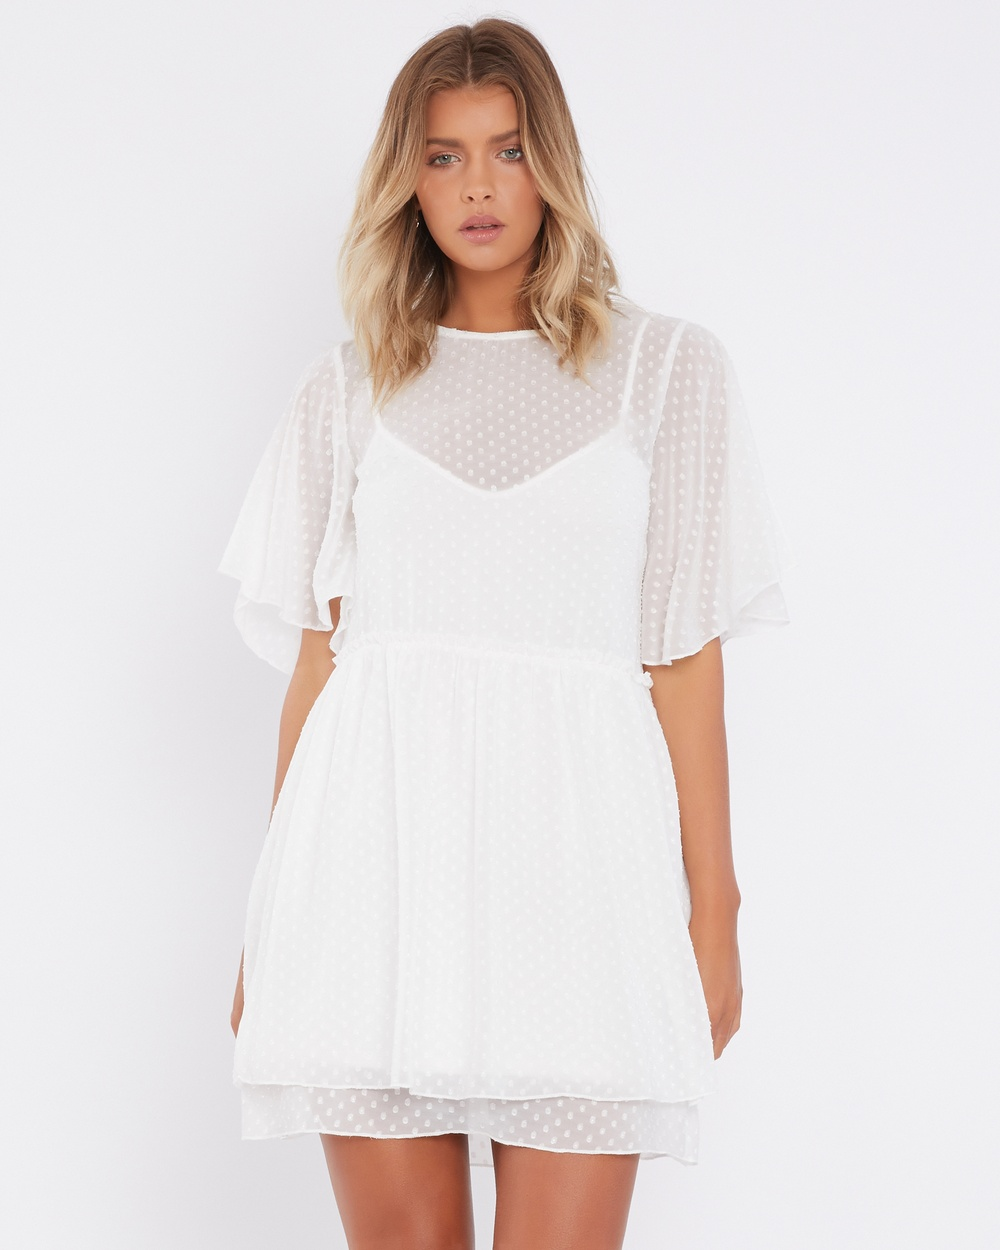 Calli Astrid Split Sleeve Dress Dresses White Polka Dot Astrid Split-Sleeve Dress